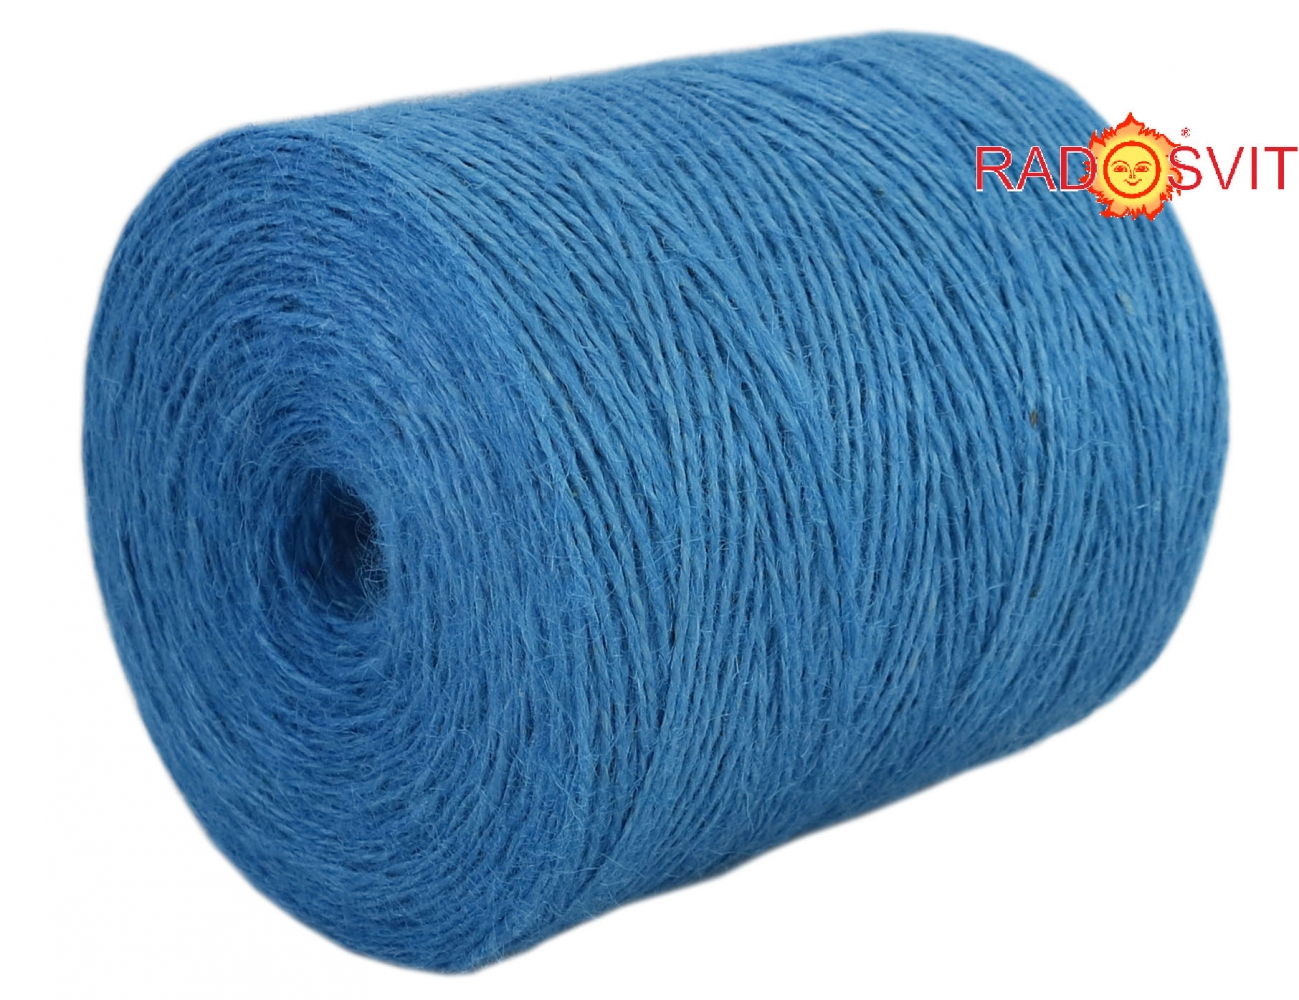 Jute twine light blue, 760 meters - 1